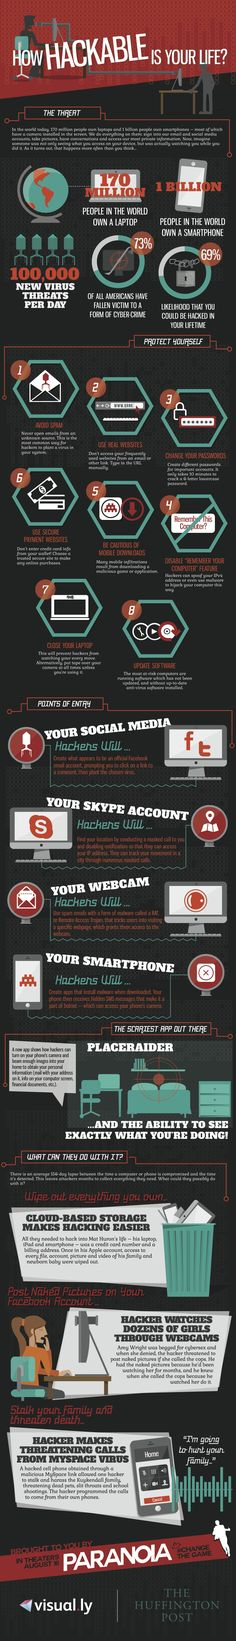 How Hackable Is Your Online Life And How To Protect Yourself